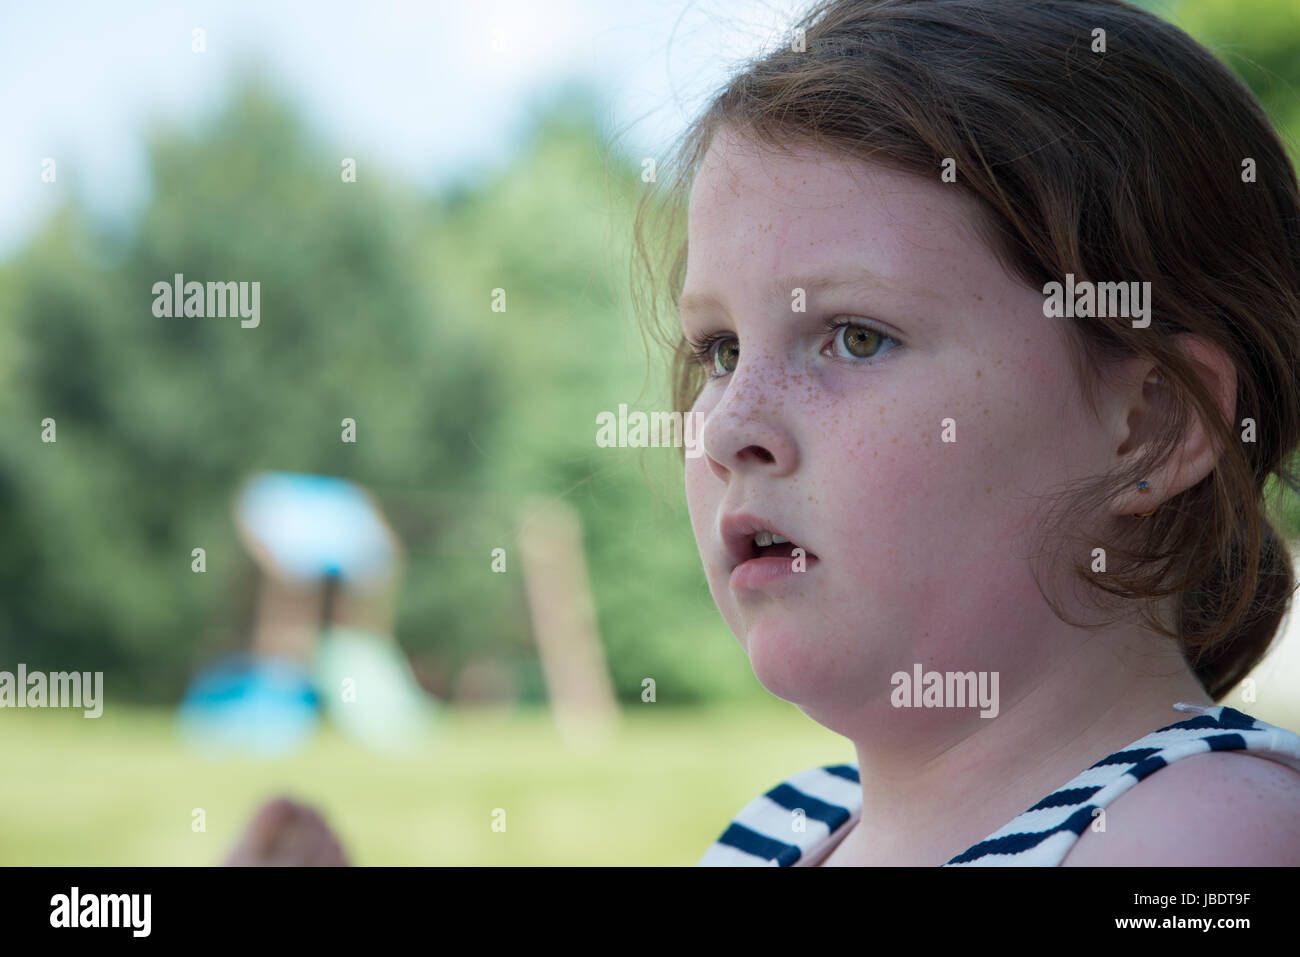 Close Portrait of Young Girl Looking Concerned Outside - Stock Image